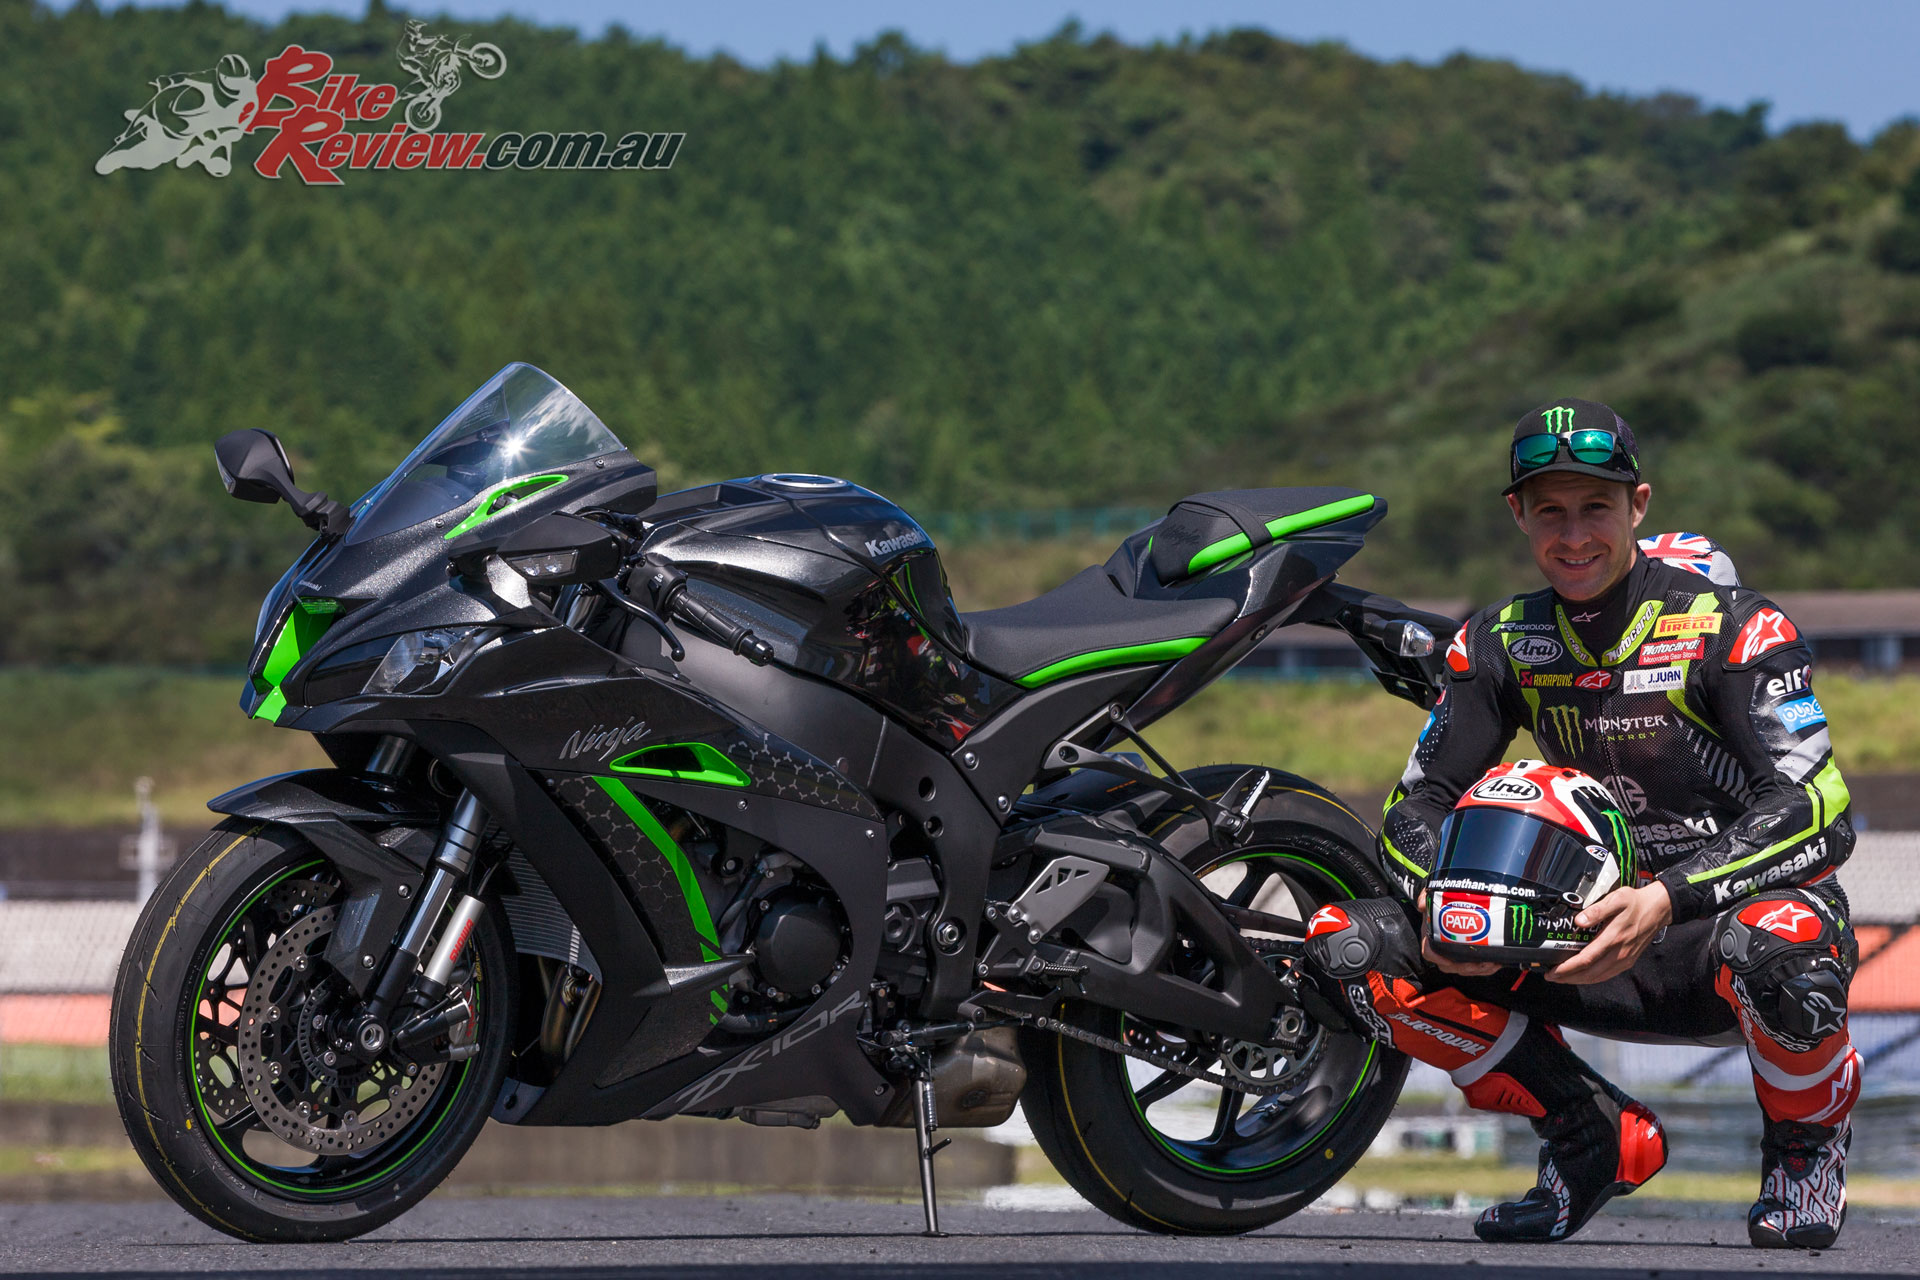 Model Update: 2019 Kawasaki Ninja ZX-10R, ZX-10RR, ZX-10R SE - Bike